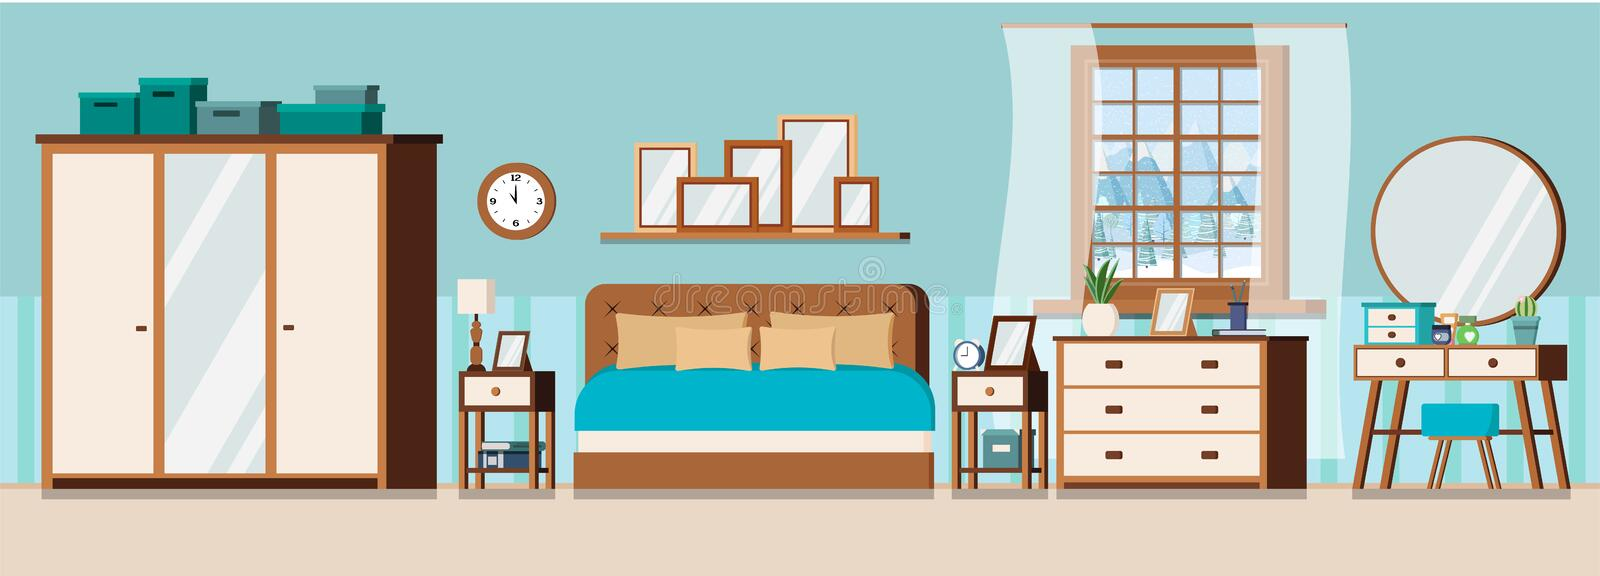 Cozy bedroom interior background with furniture and window. With winter landscape scene. Wardrobe, bed, pillows, nightstands, chest of drawers, mirror, dressing stock illustration